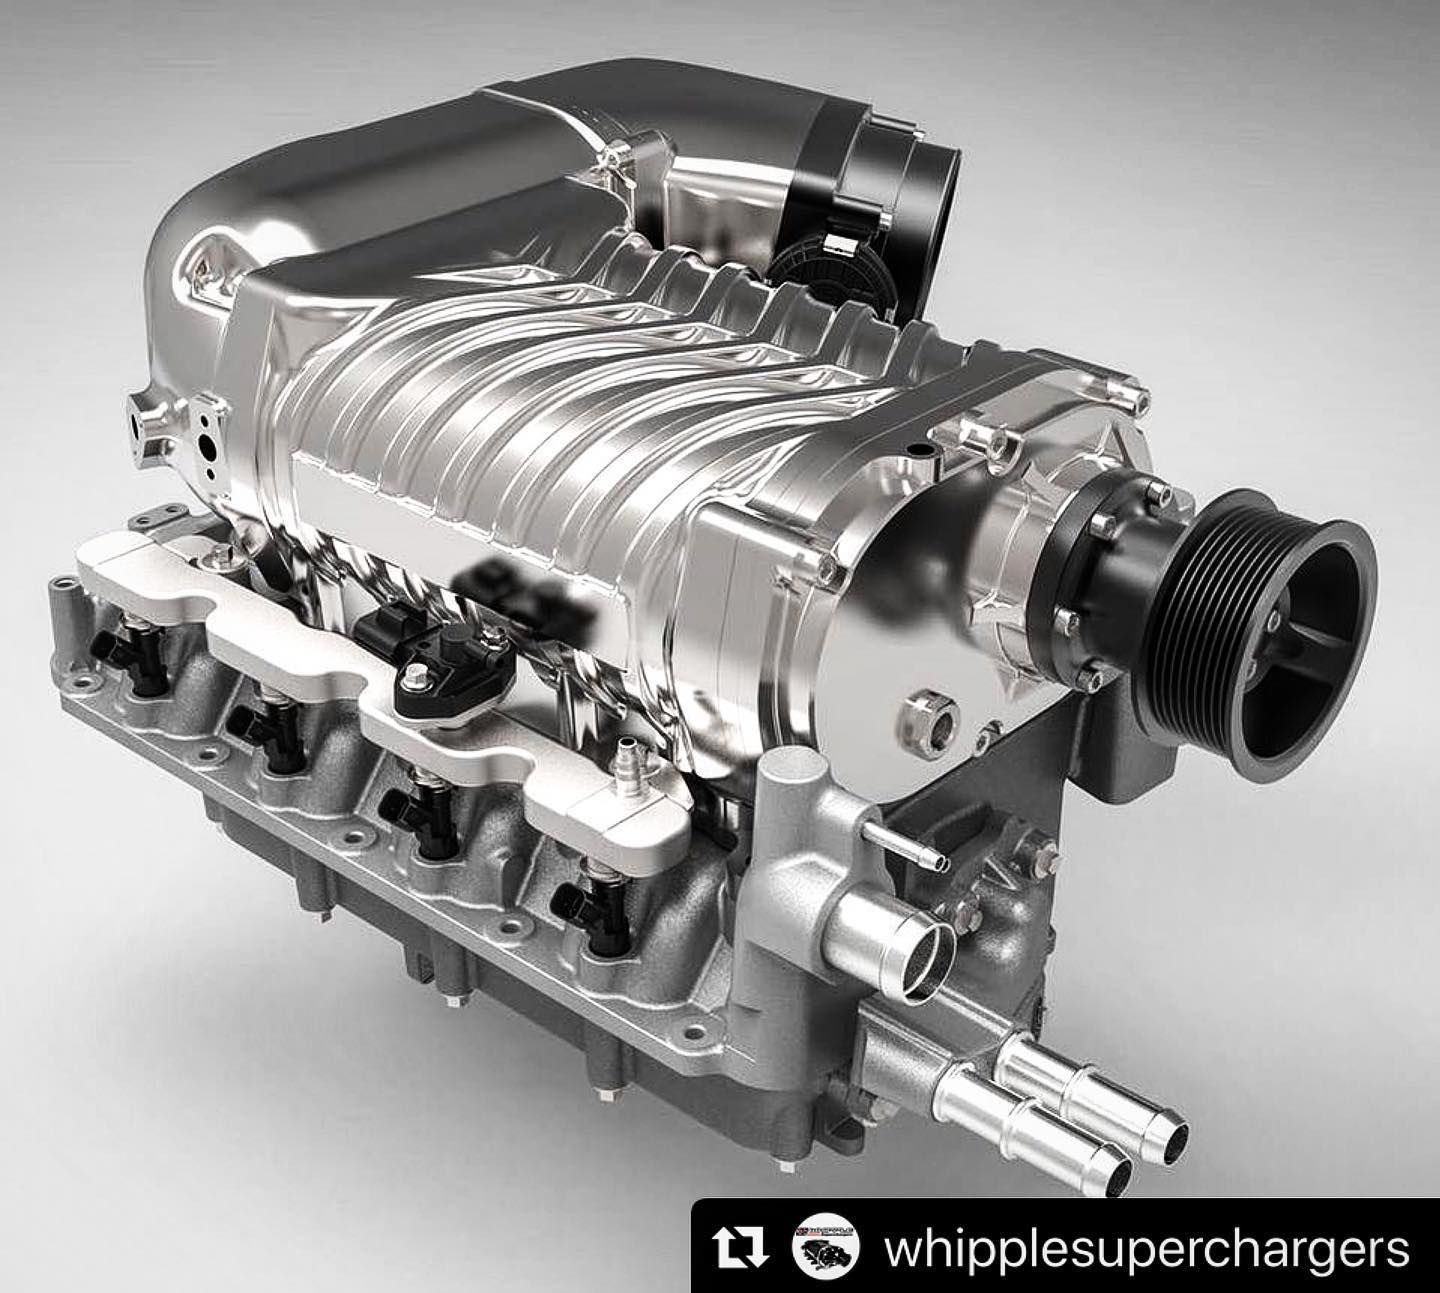 Repost Whipplesuperchargers With Make Repost The Gen 5 3 8l Gt500 Supercharger System Is Here Shelby Gt500 Ford Mustang Shelby Gt500 2014 Ford Mustang